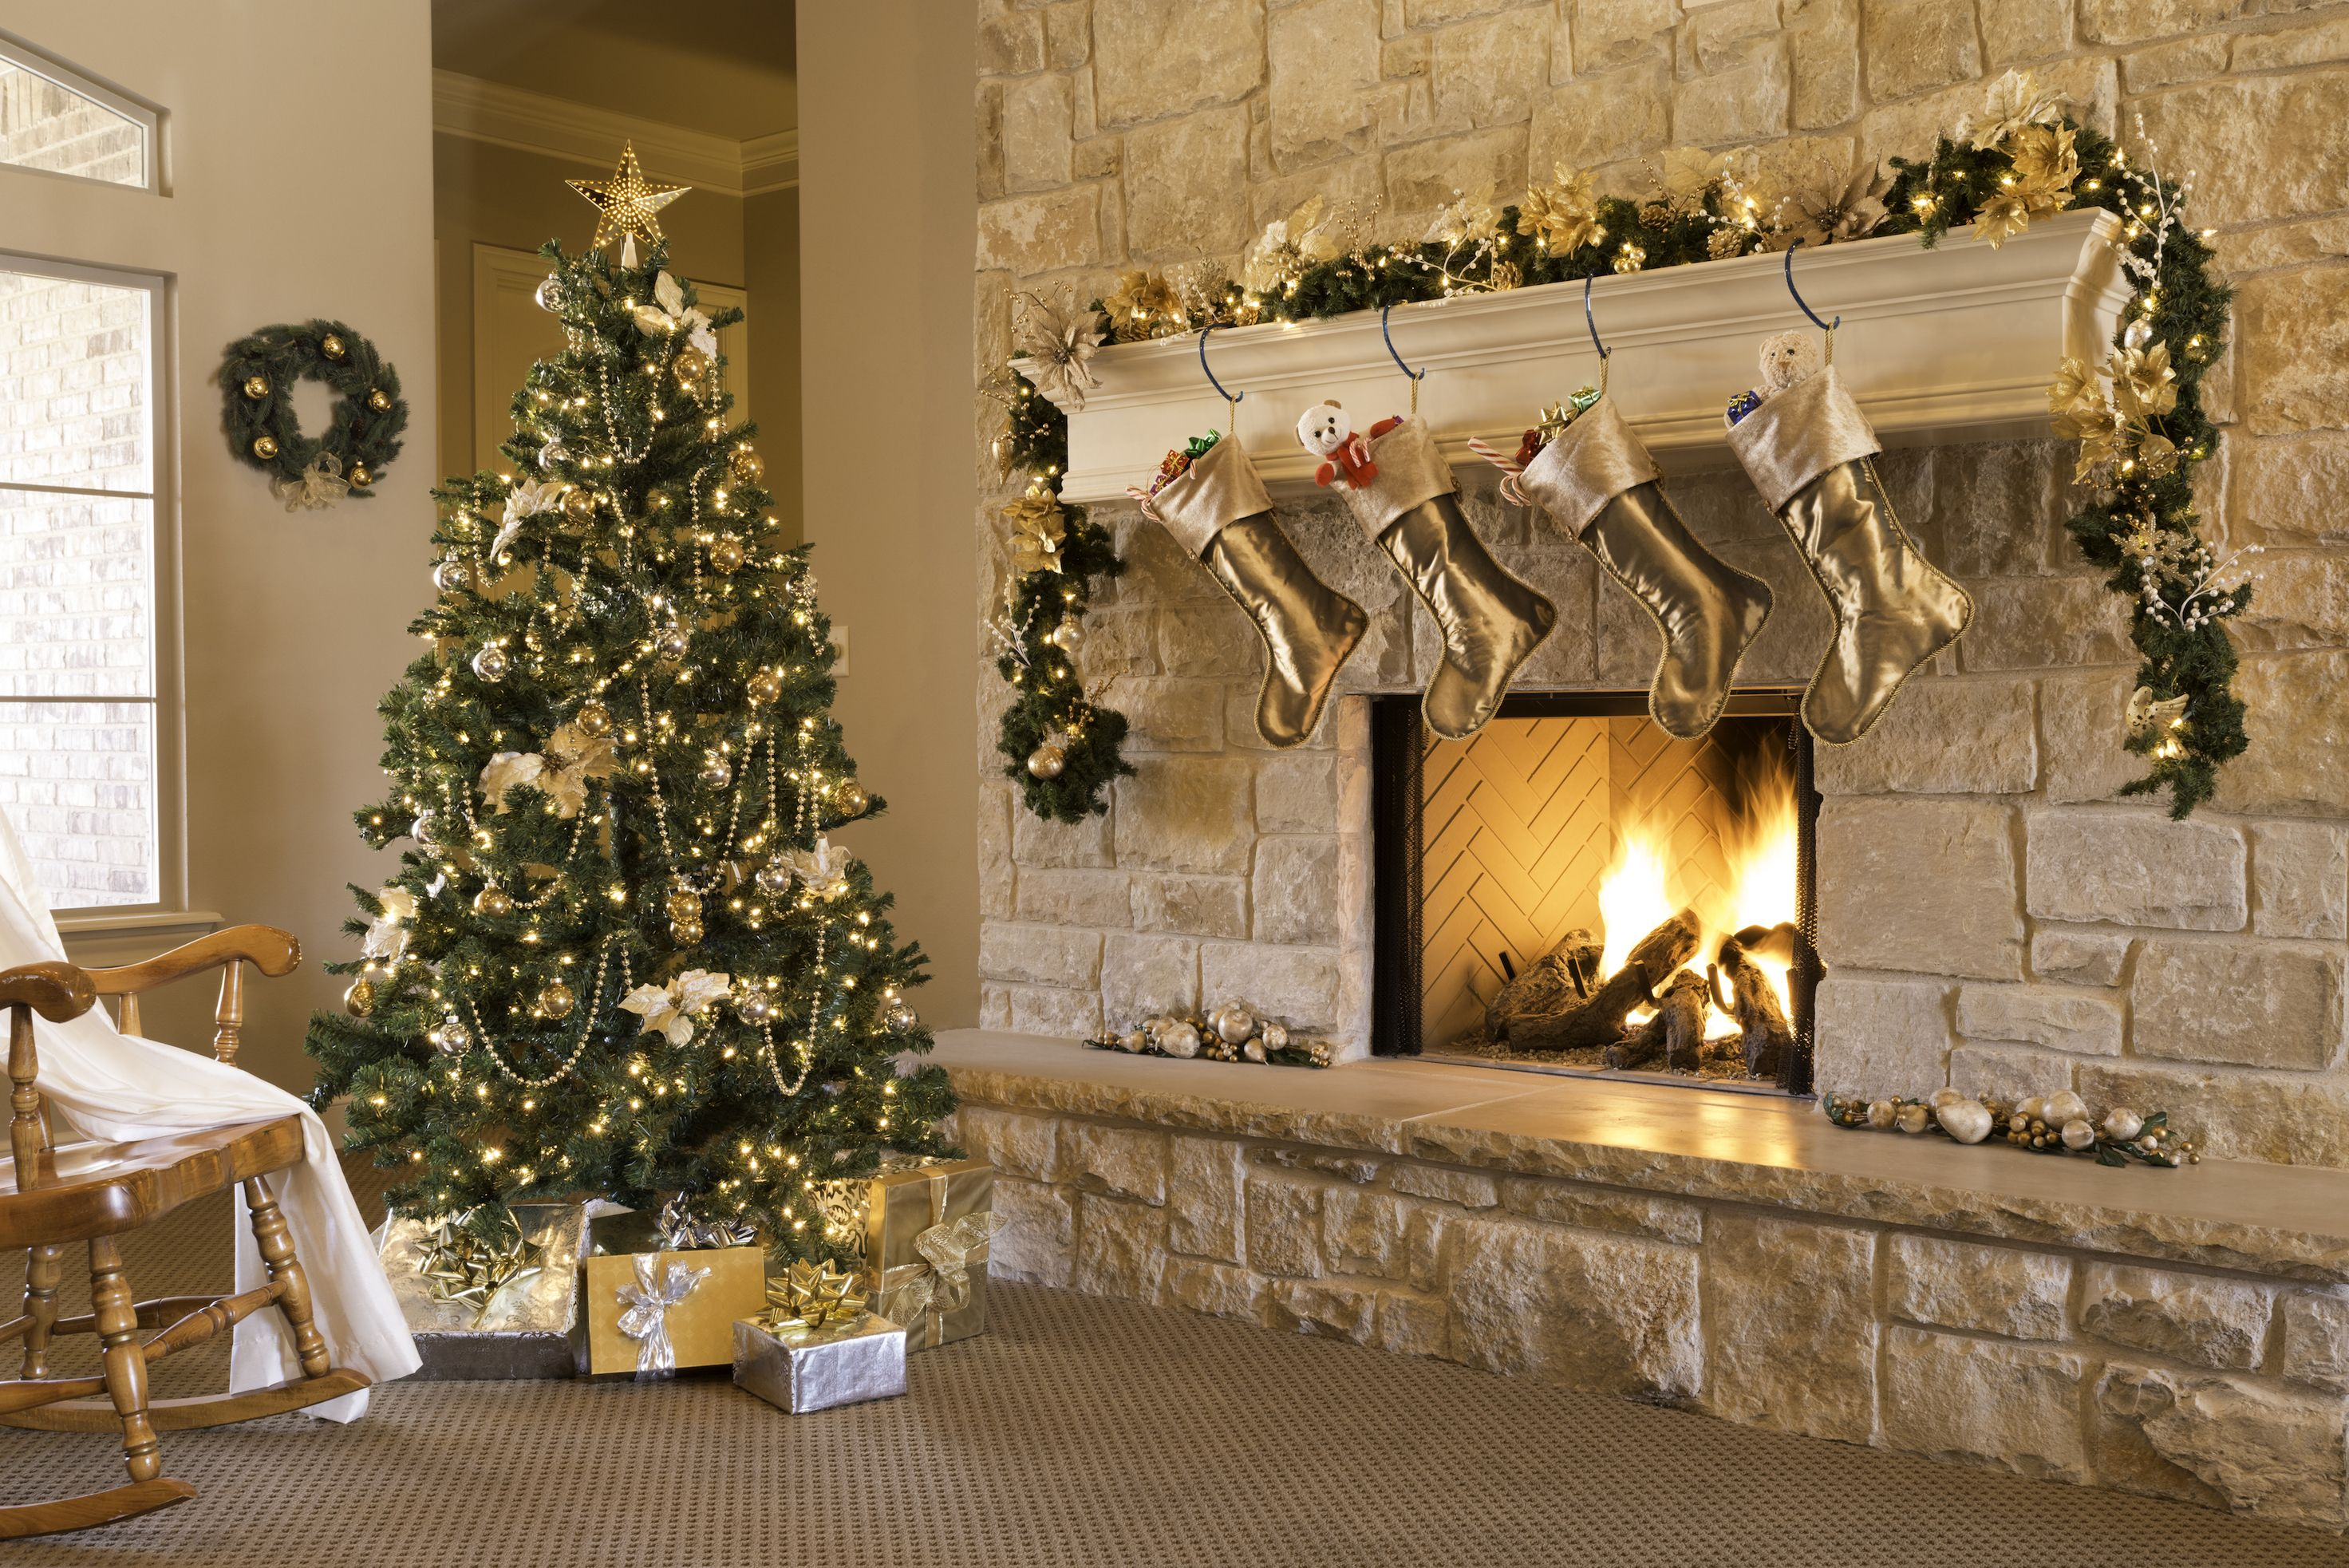 15 stunning christmas living rooms holiday living room decor ideas rh elledecor com christmas living room decorating ideas christmas living room decorating